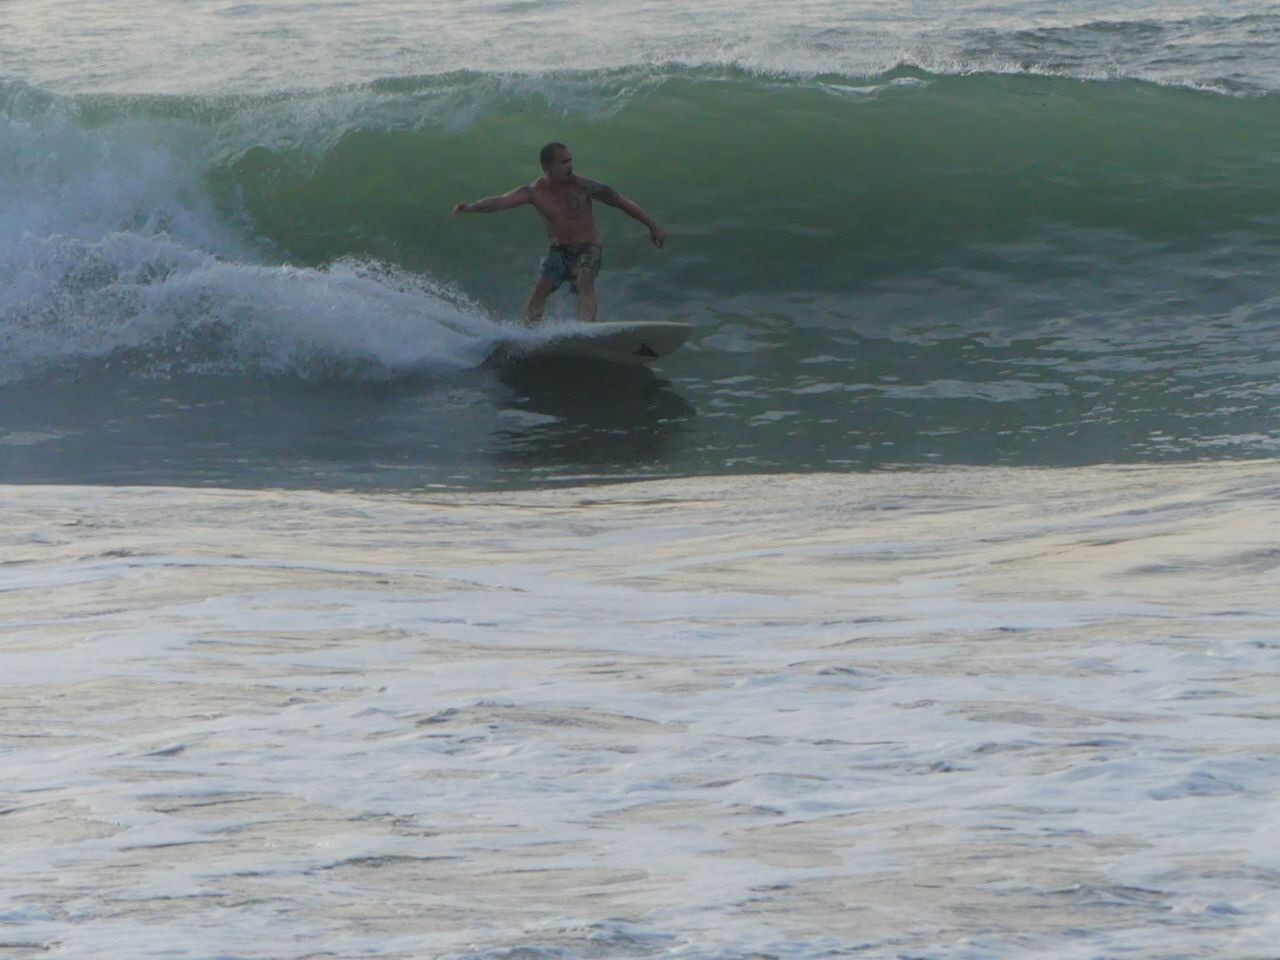 Surfcamp Beachfront - Terquito